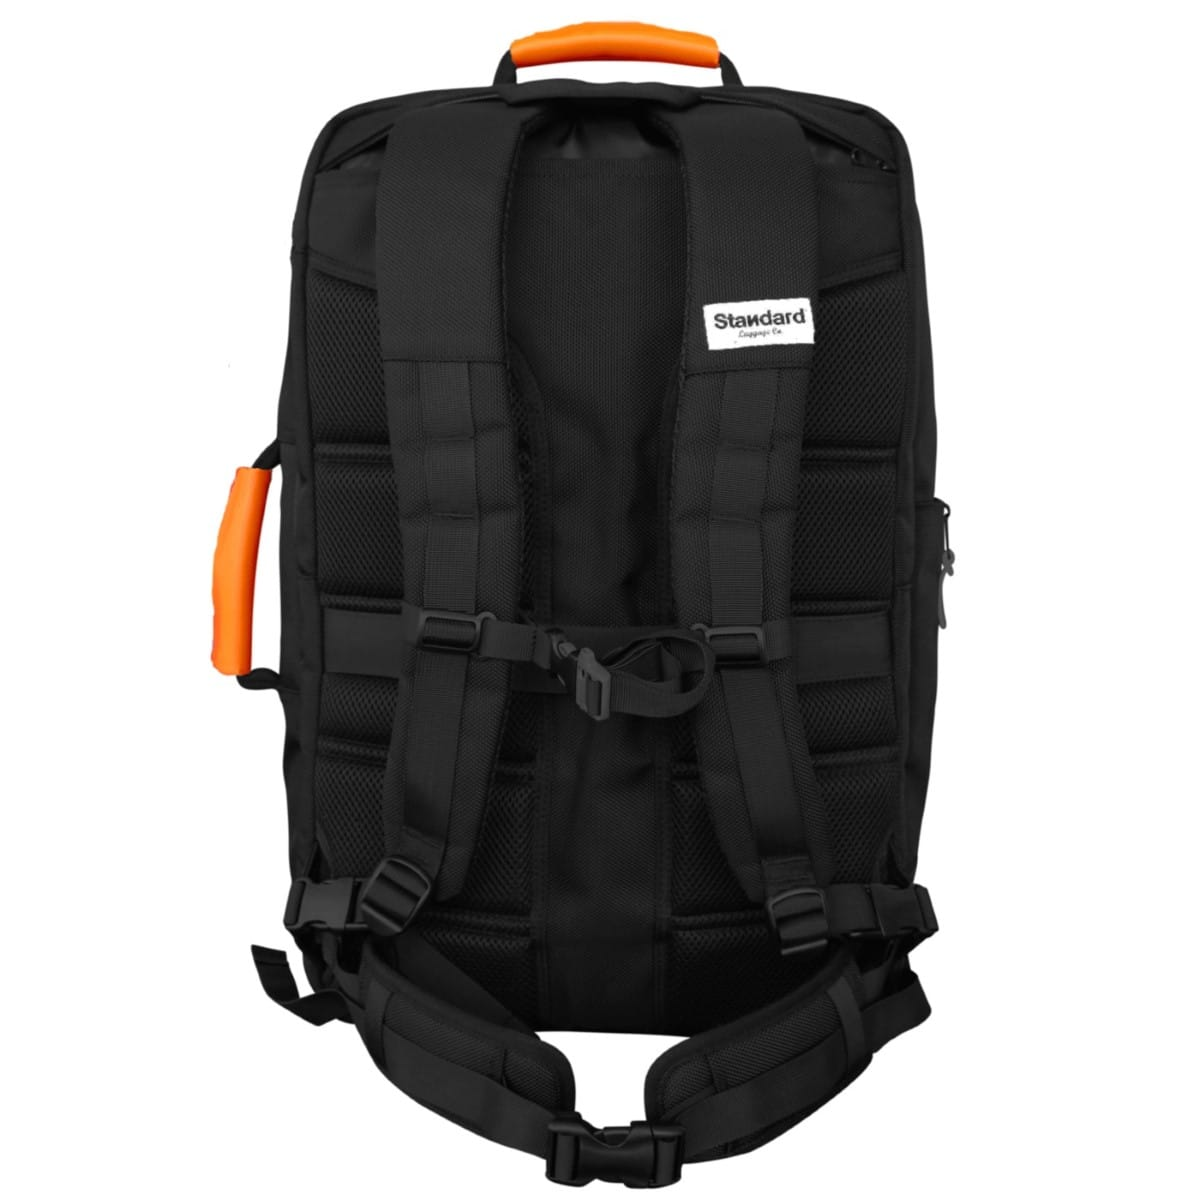 standard luggage backpack 4